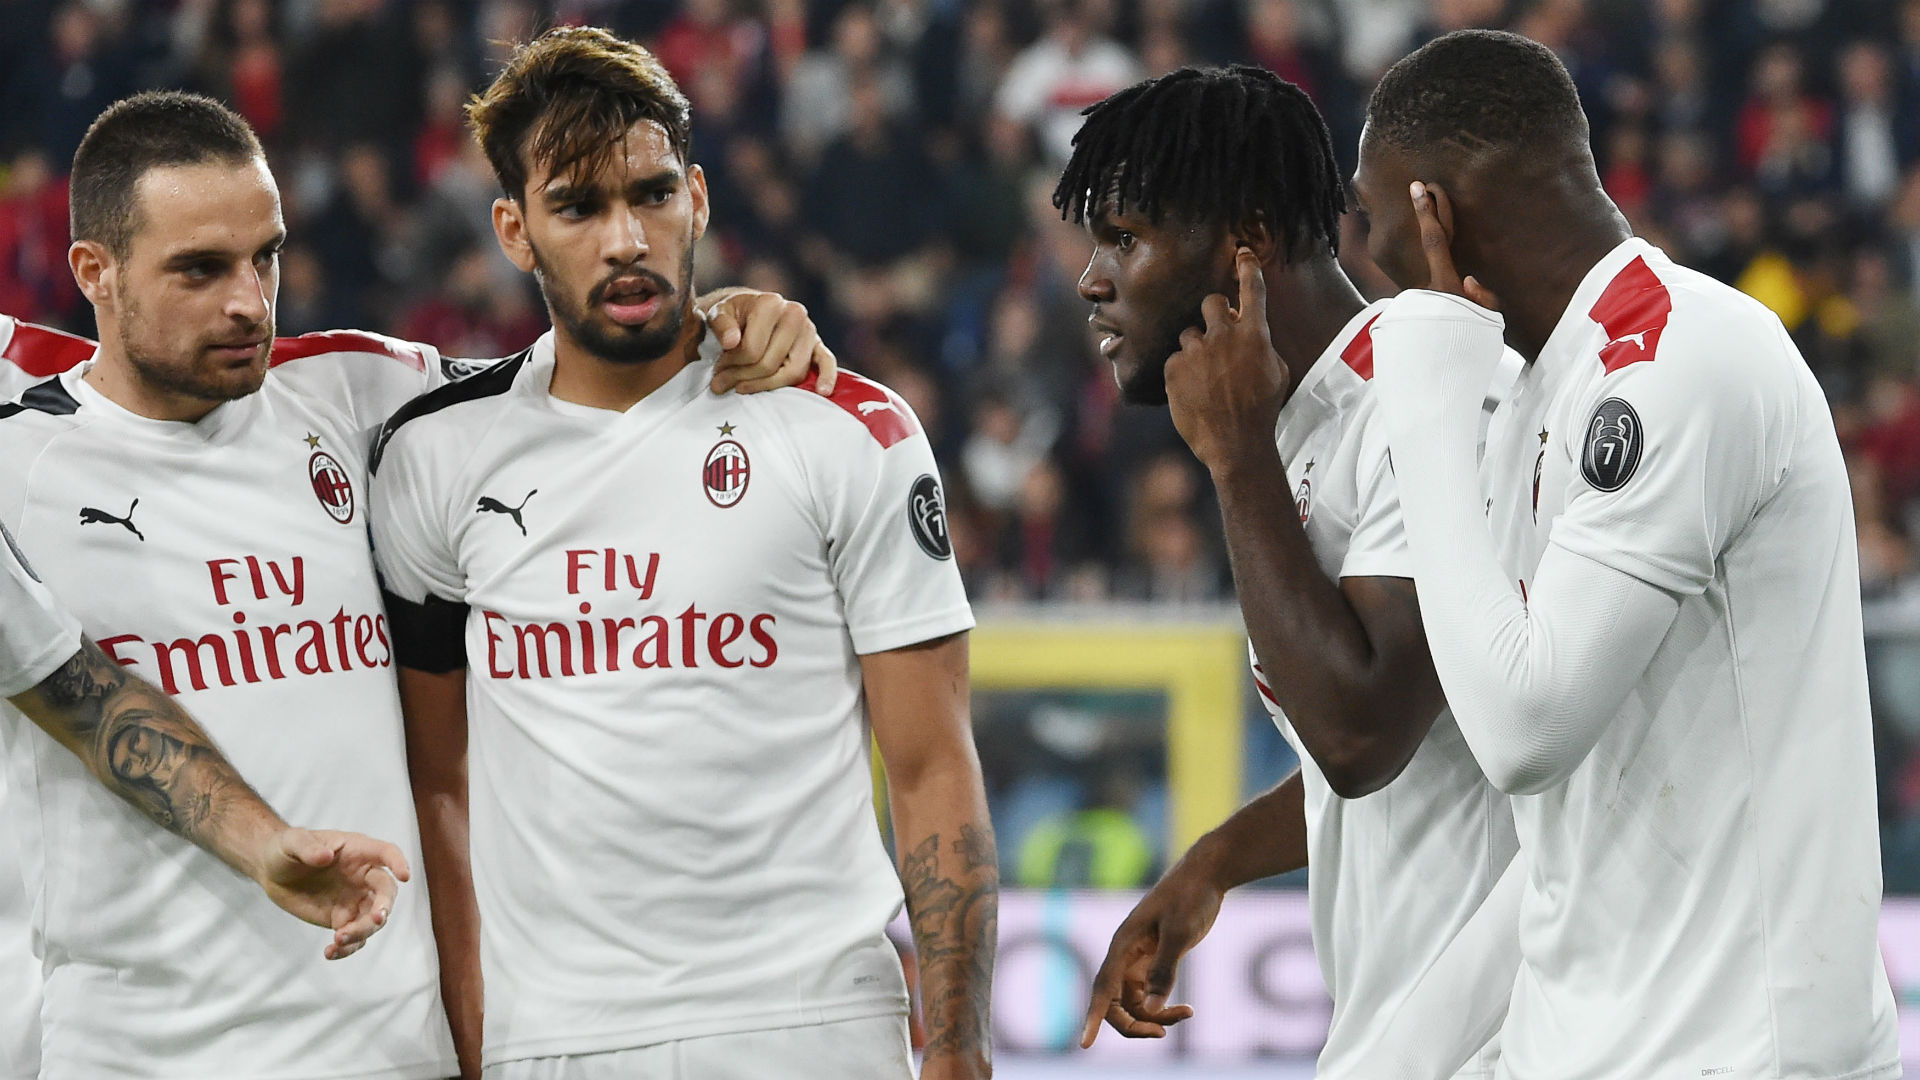 AC Milan's Champions League dreams not over yet - Kessie